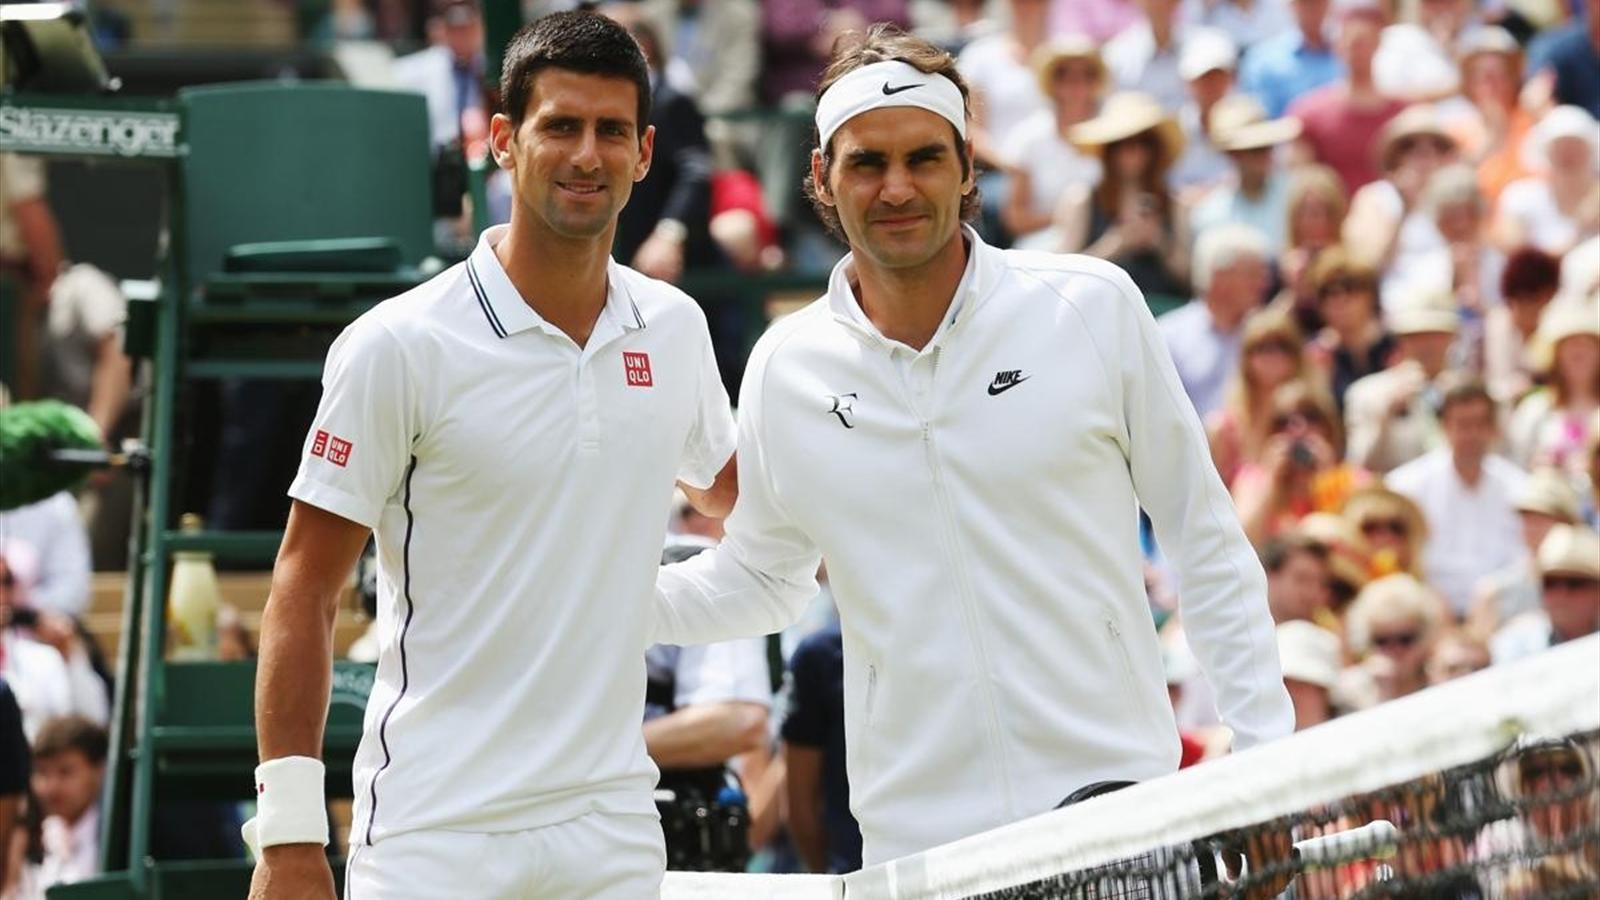 Novak Djokovic and Roger Federer on those Wimbledon courts Movie 1600x900